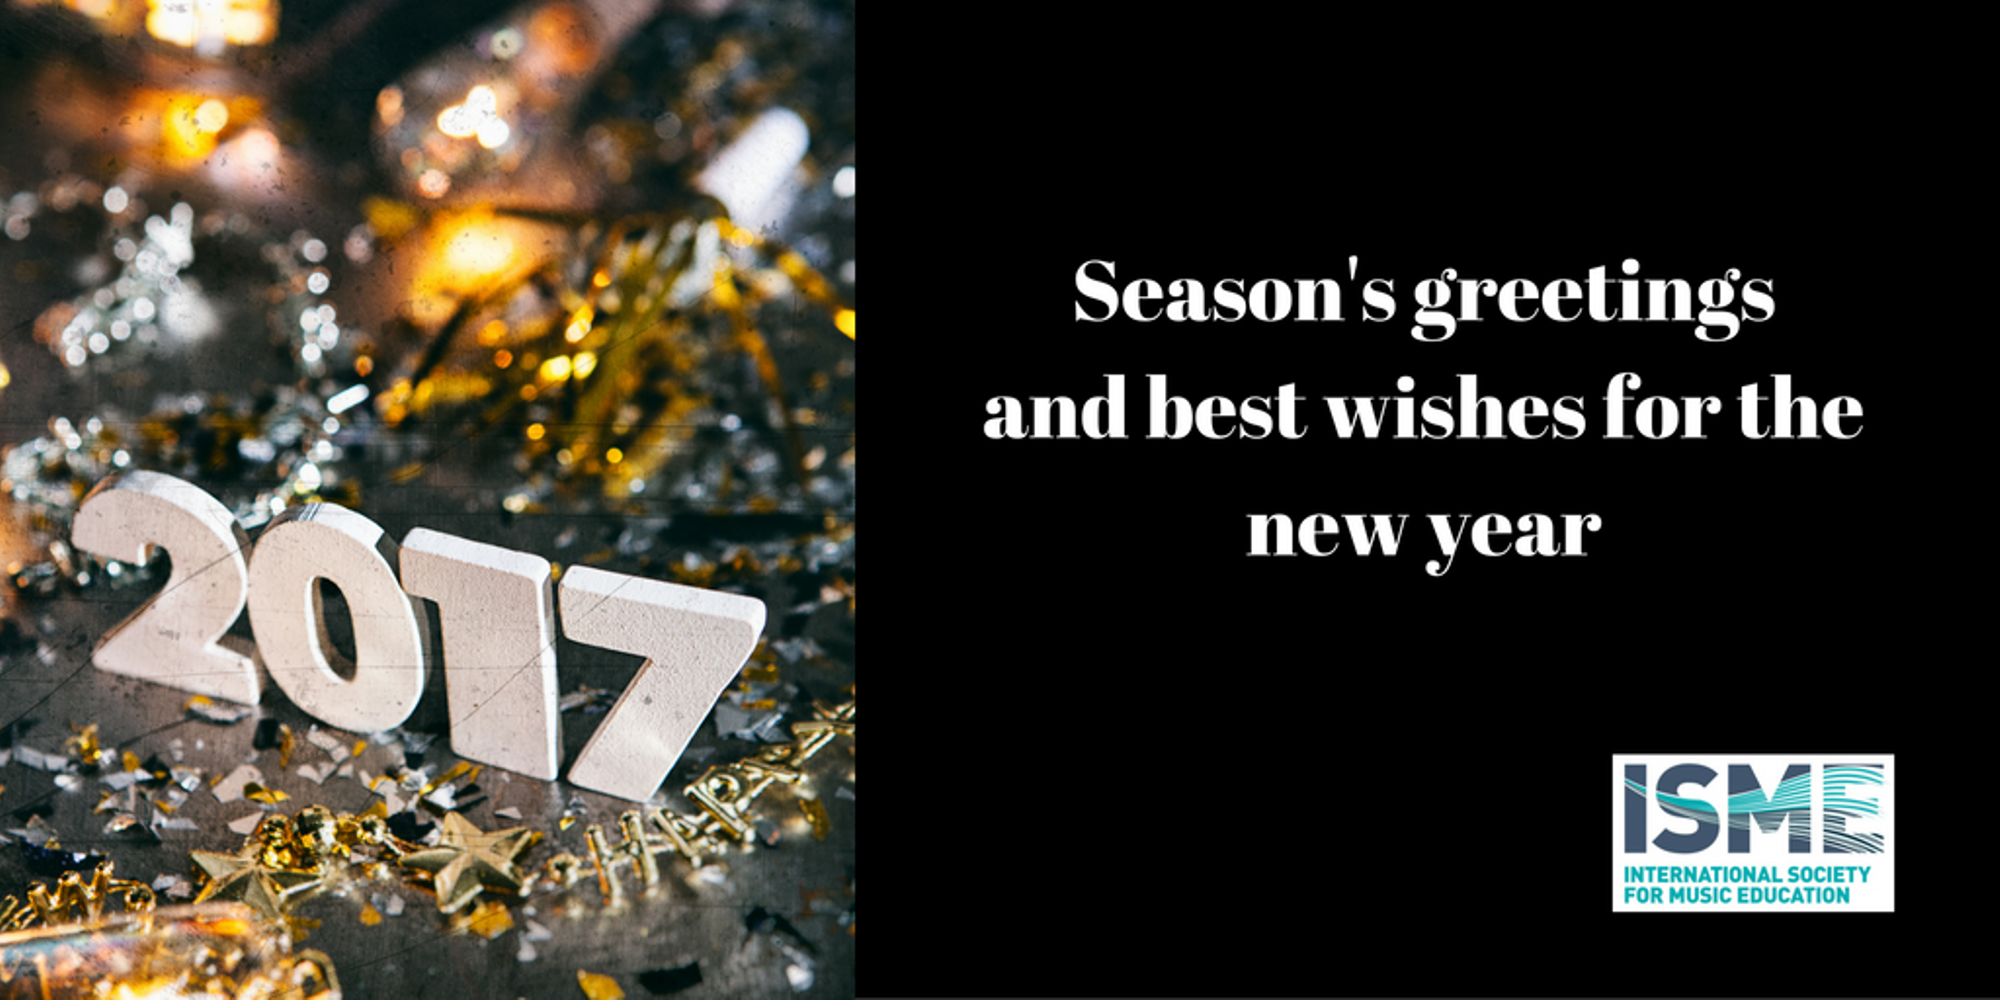 Message from the ISME President, Lee Higgins: season's greetings and best wishes for the new year